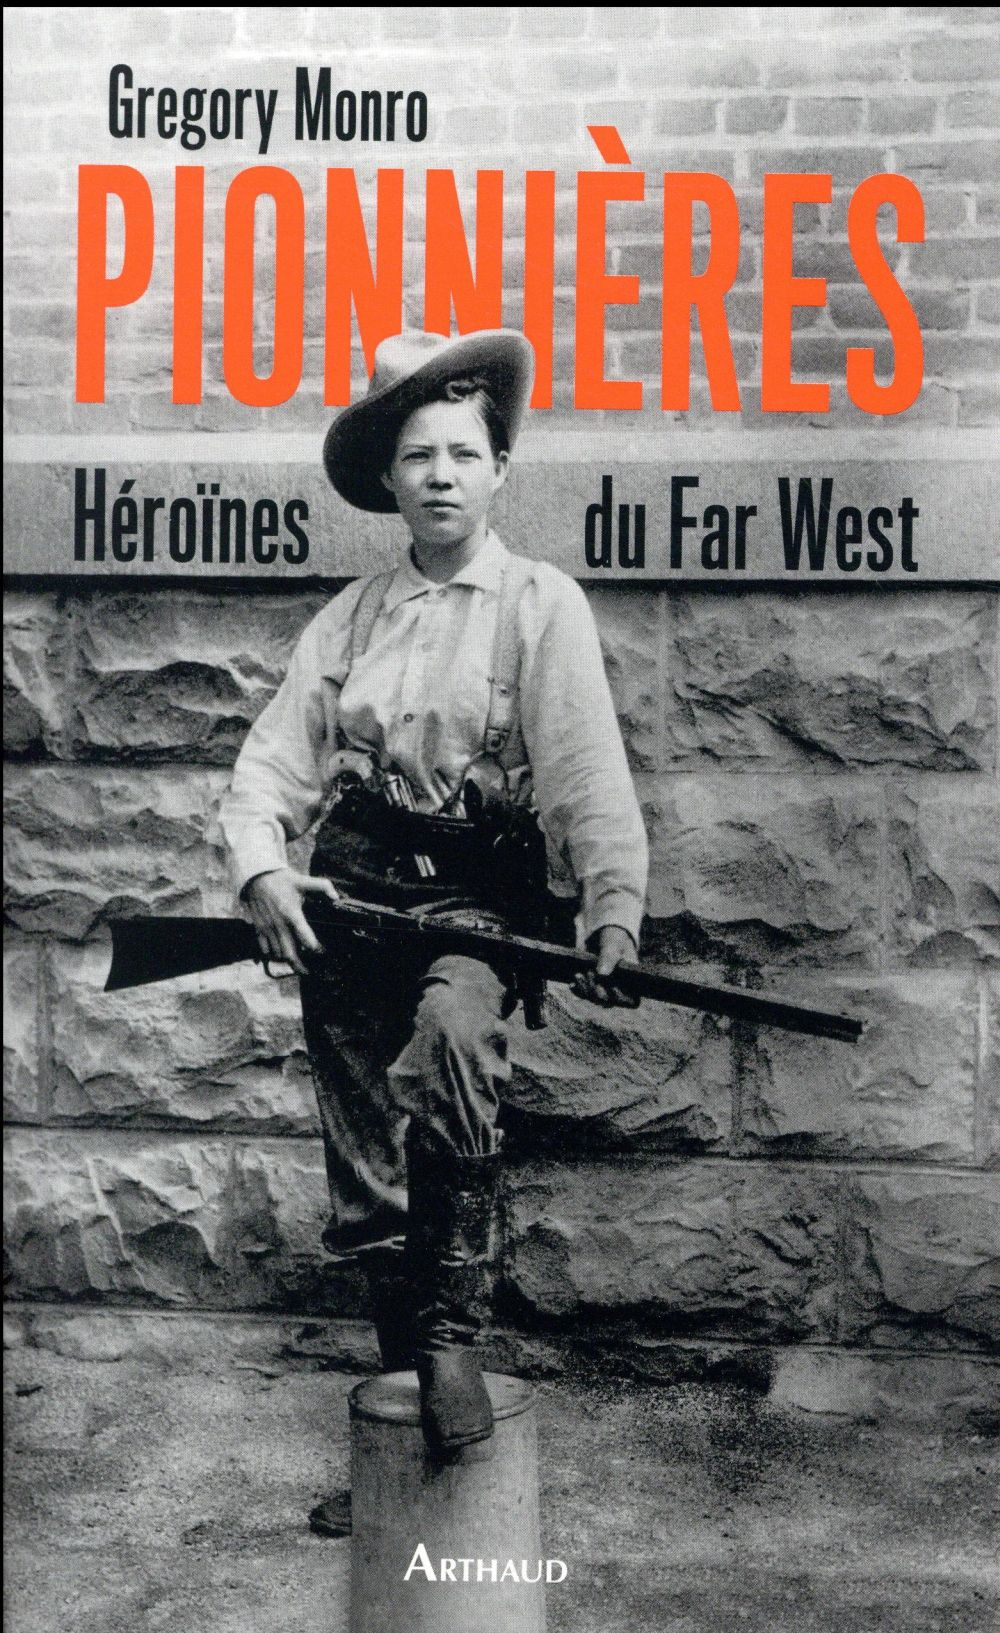 PIONNIERES : HEROINES DU FAR WEST